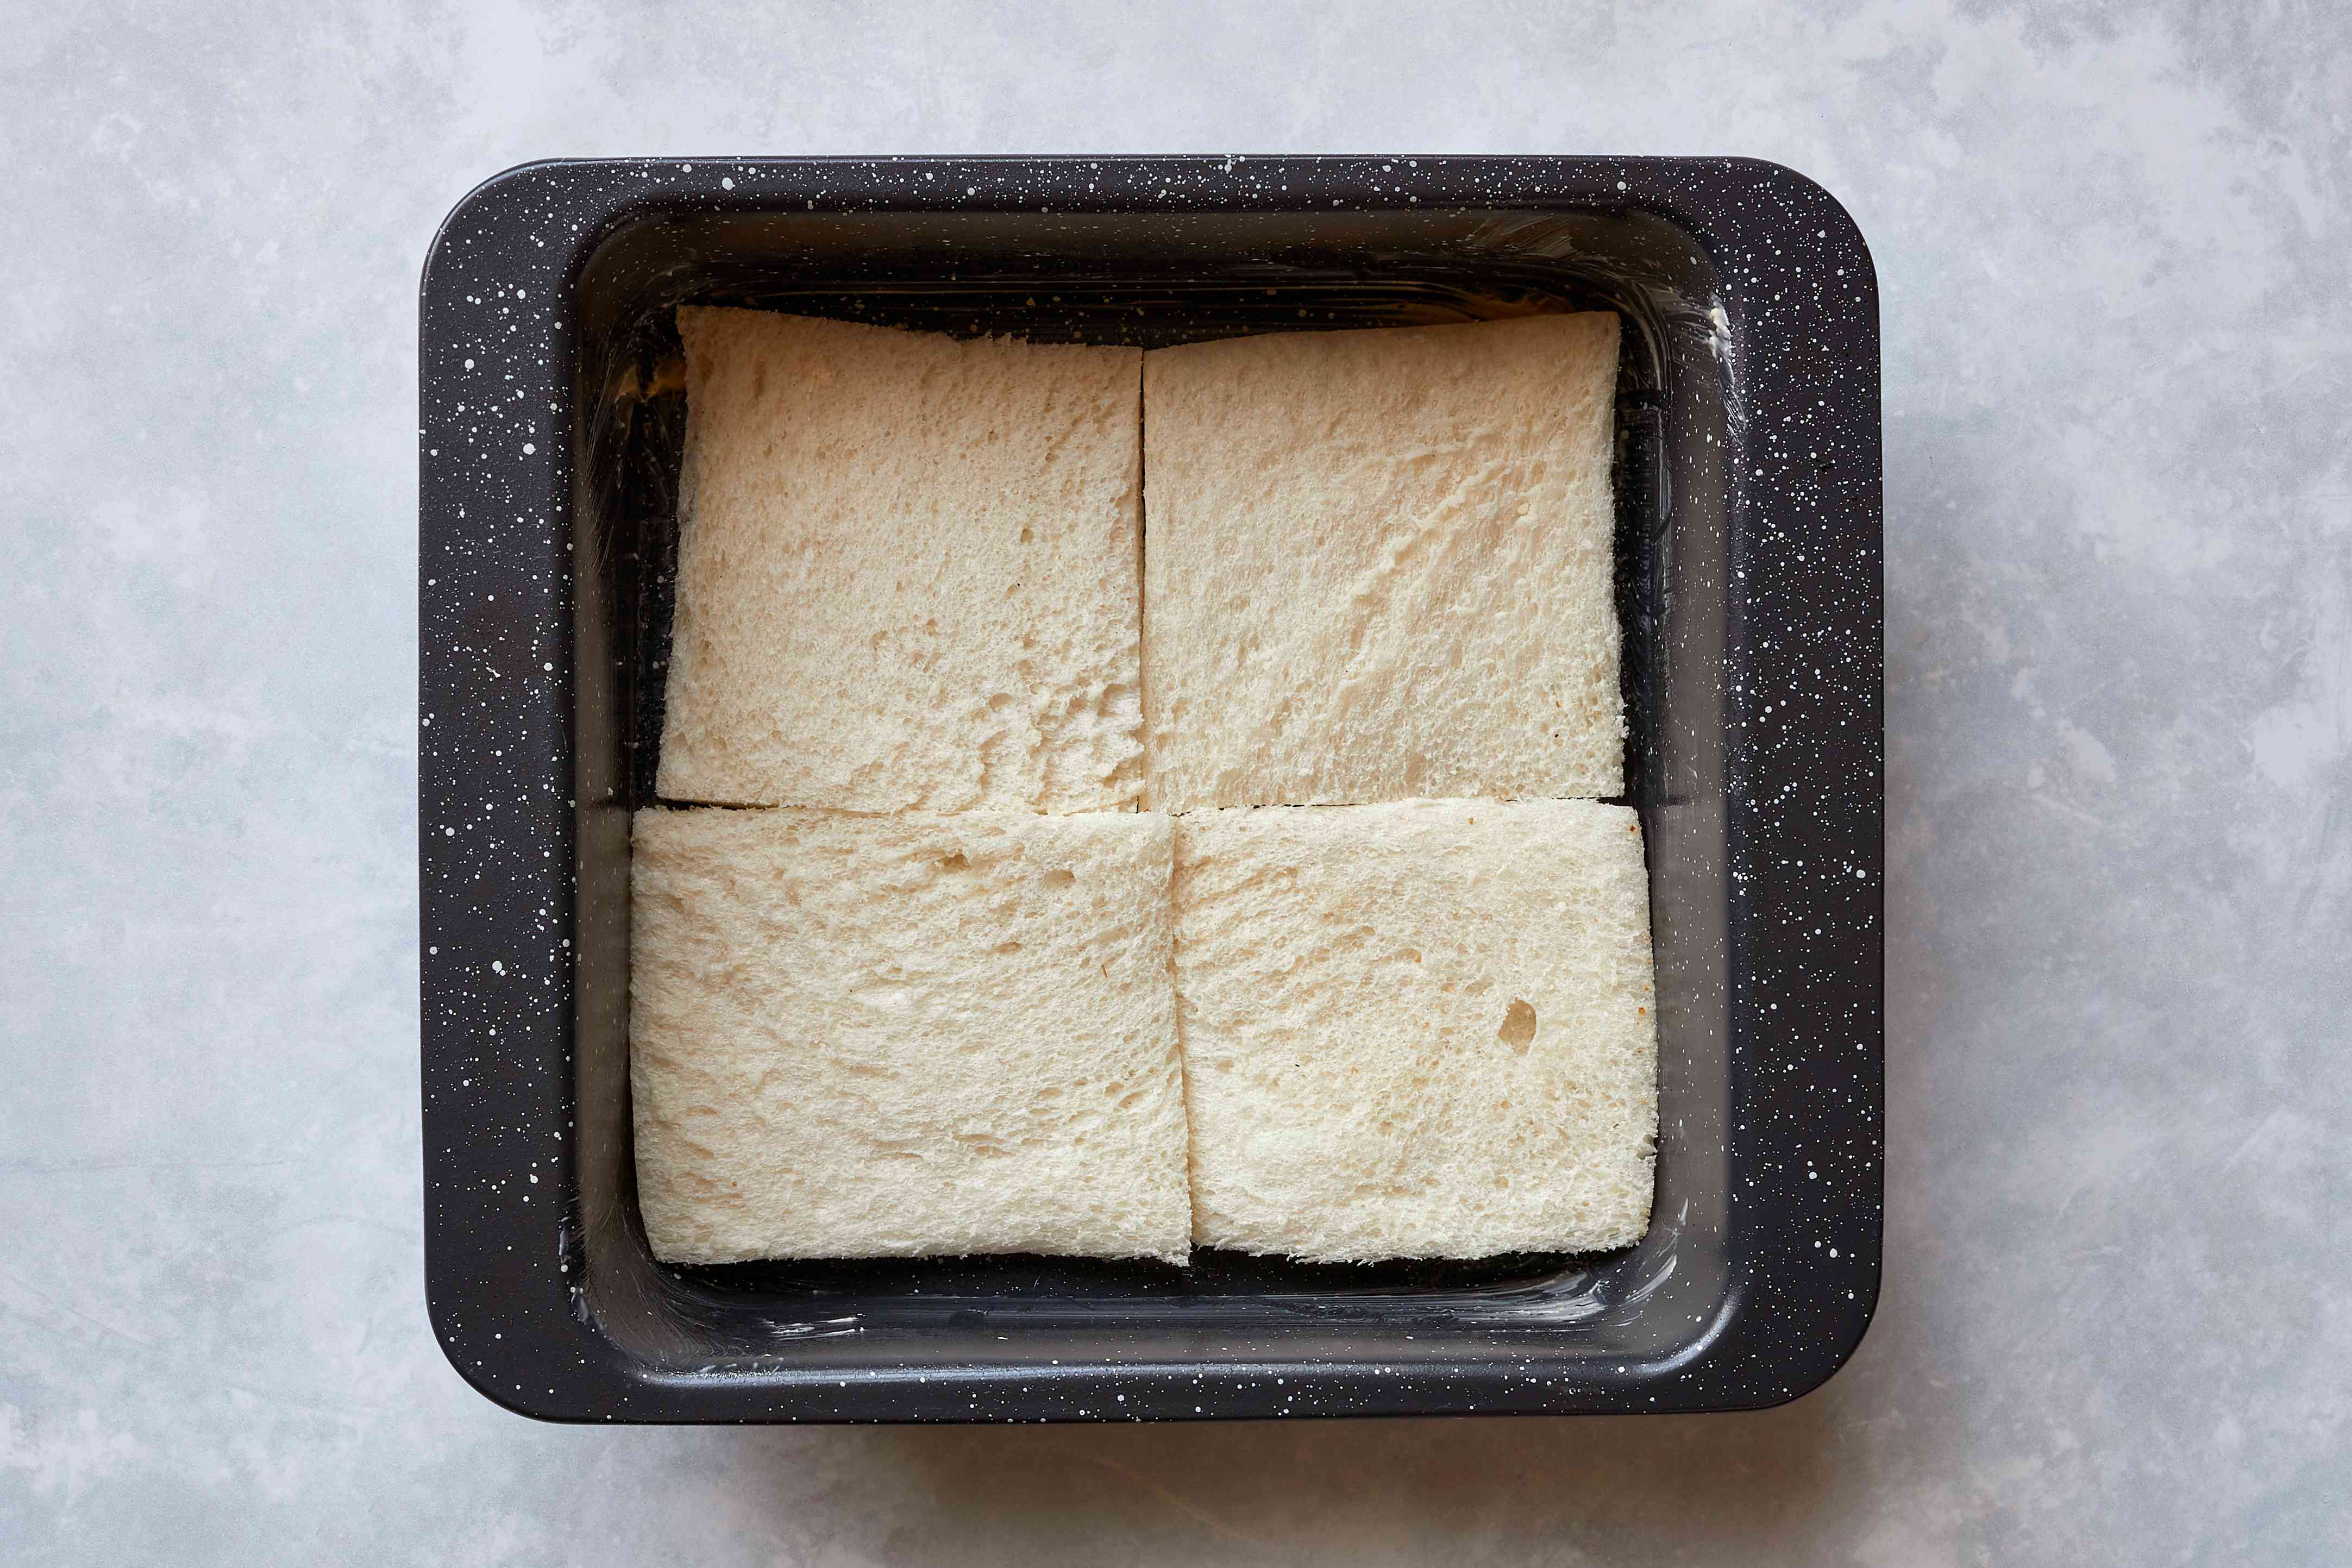 white bread in a baking dish